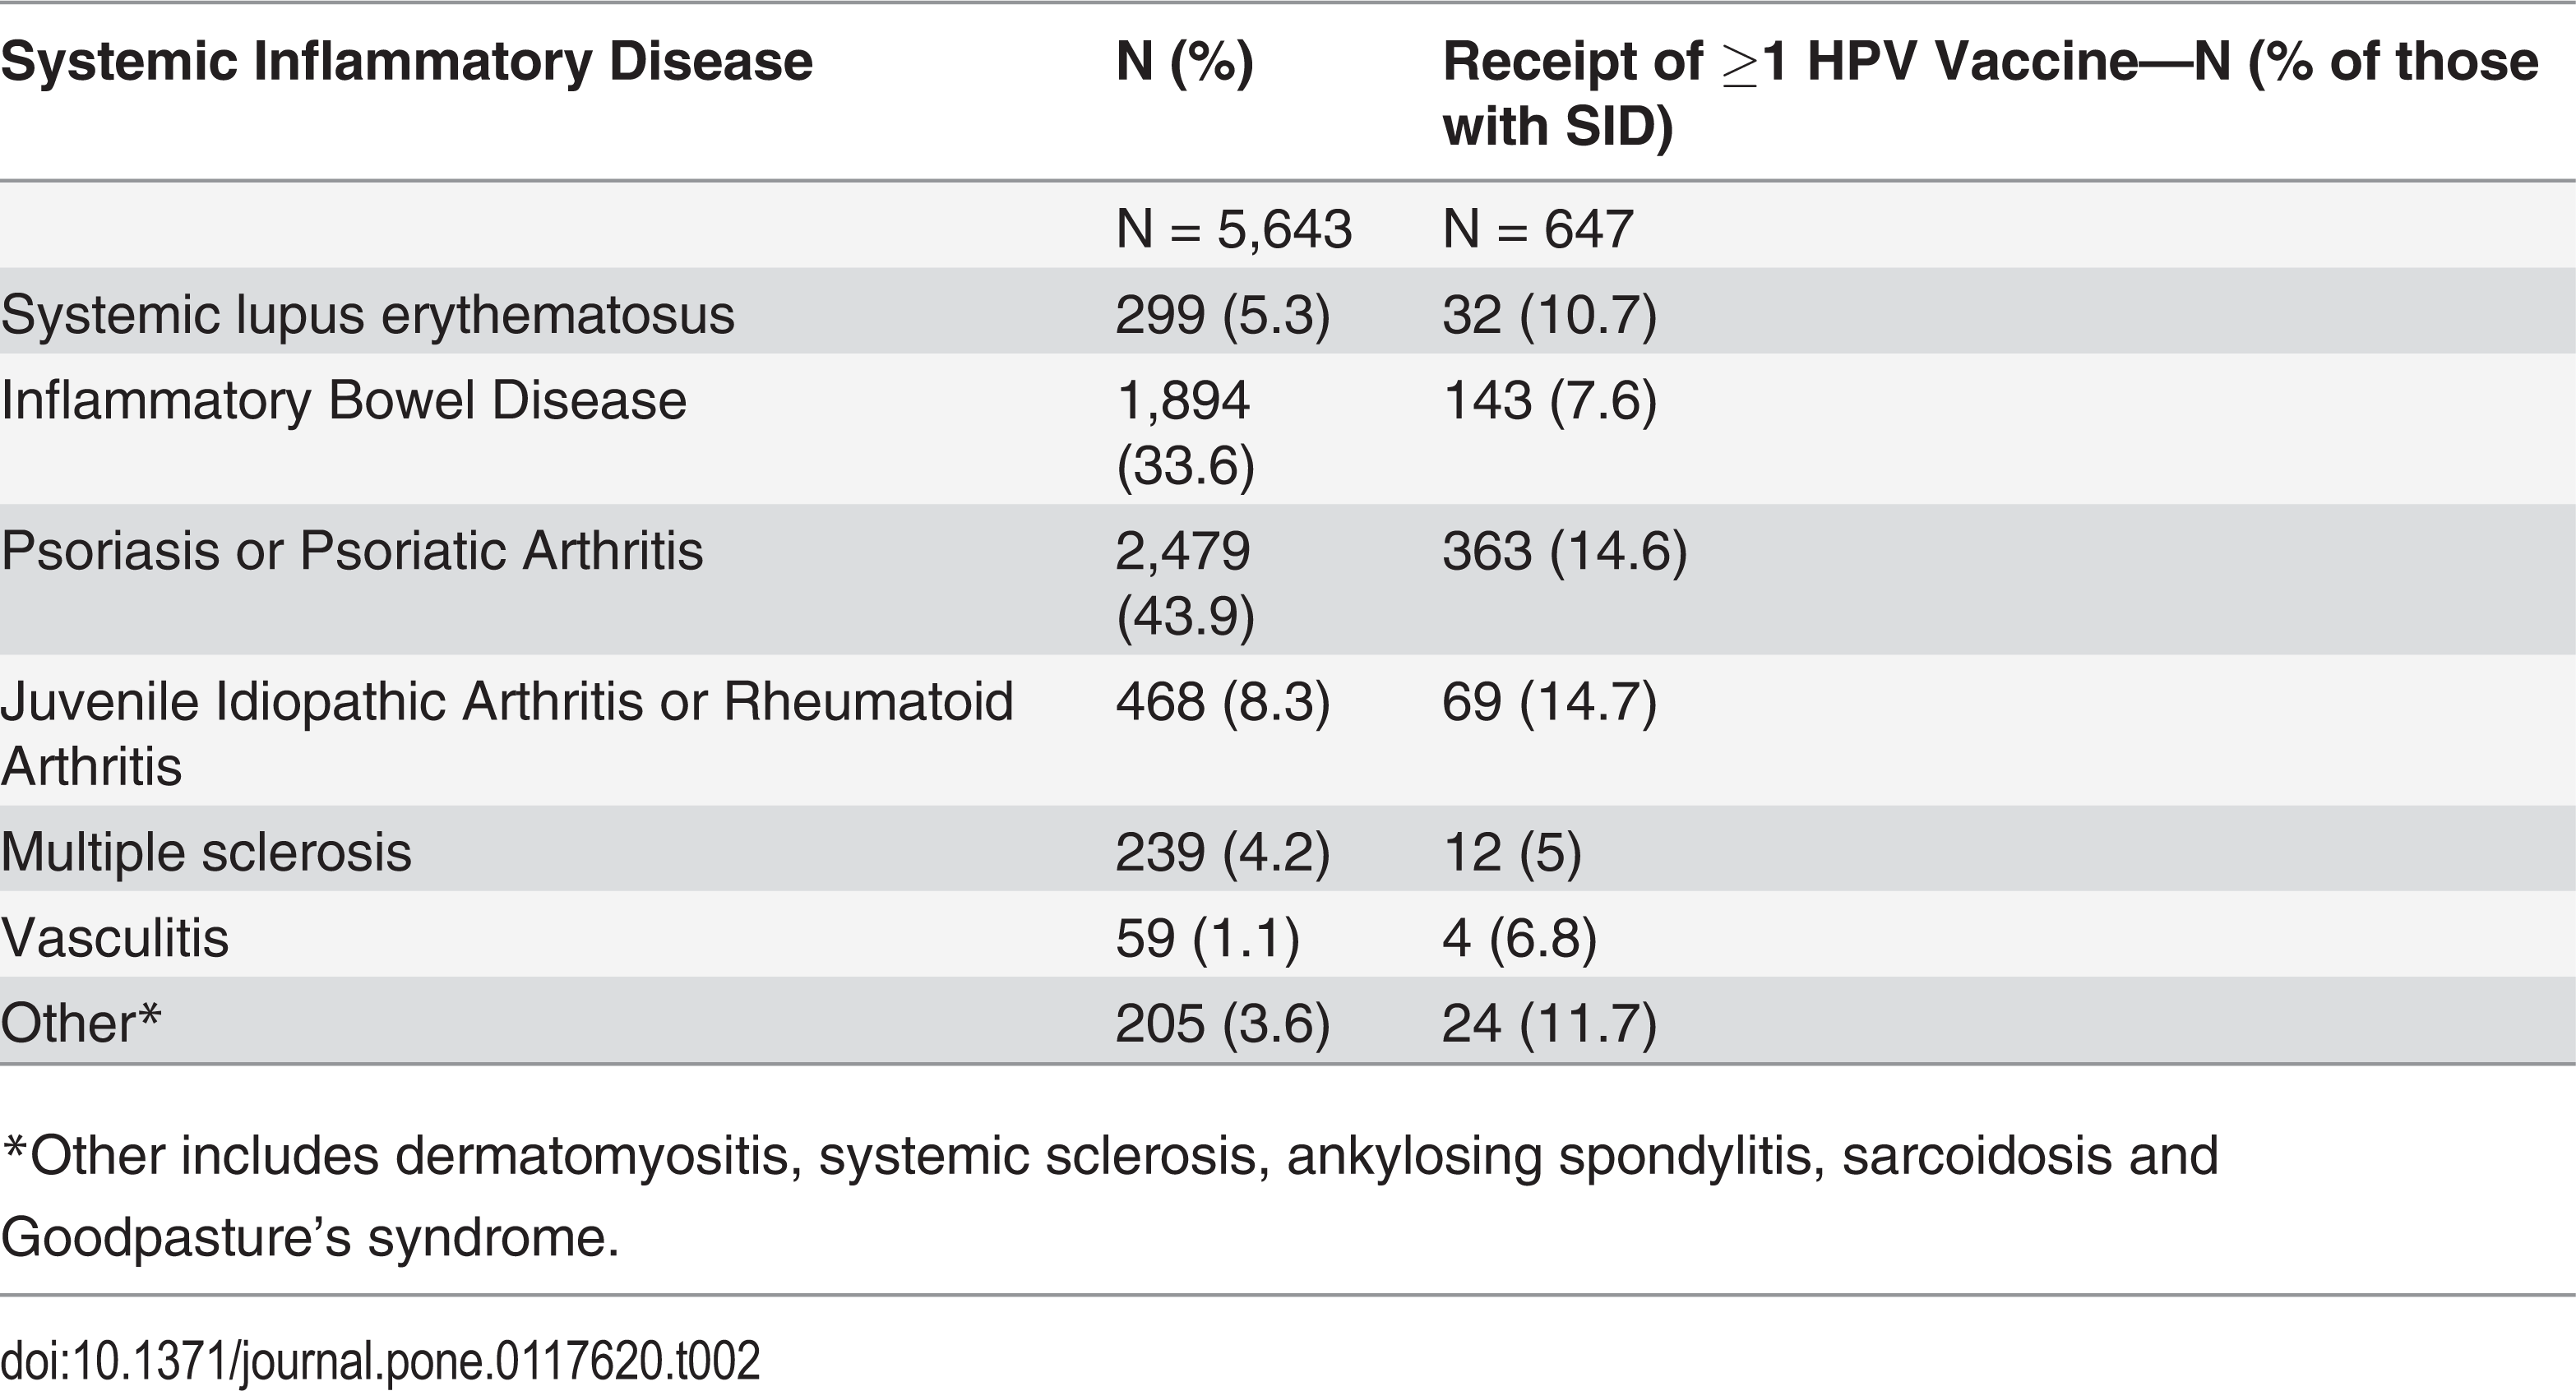 Icd 10 code for hpv (human papillomavirus) infection StandardeDeCodificare